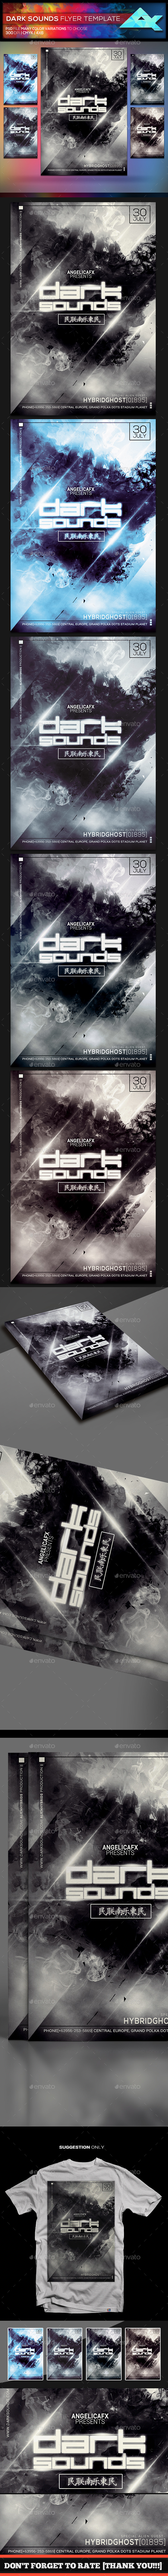 Dark Sounds Flyer Template - Flyers Print Templates